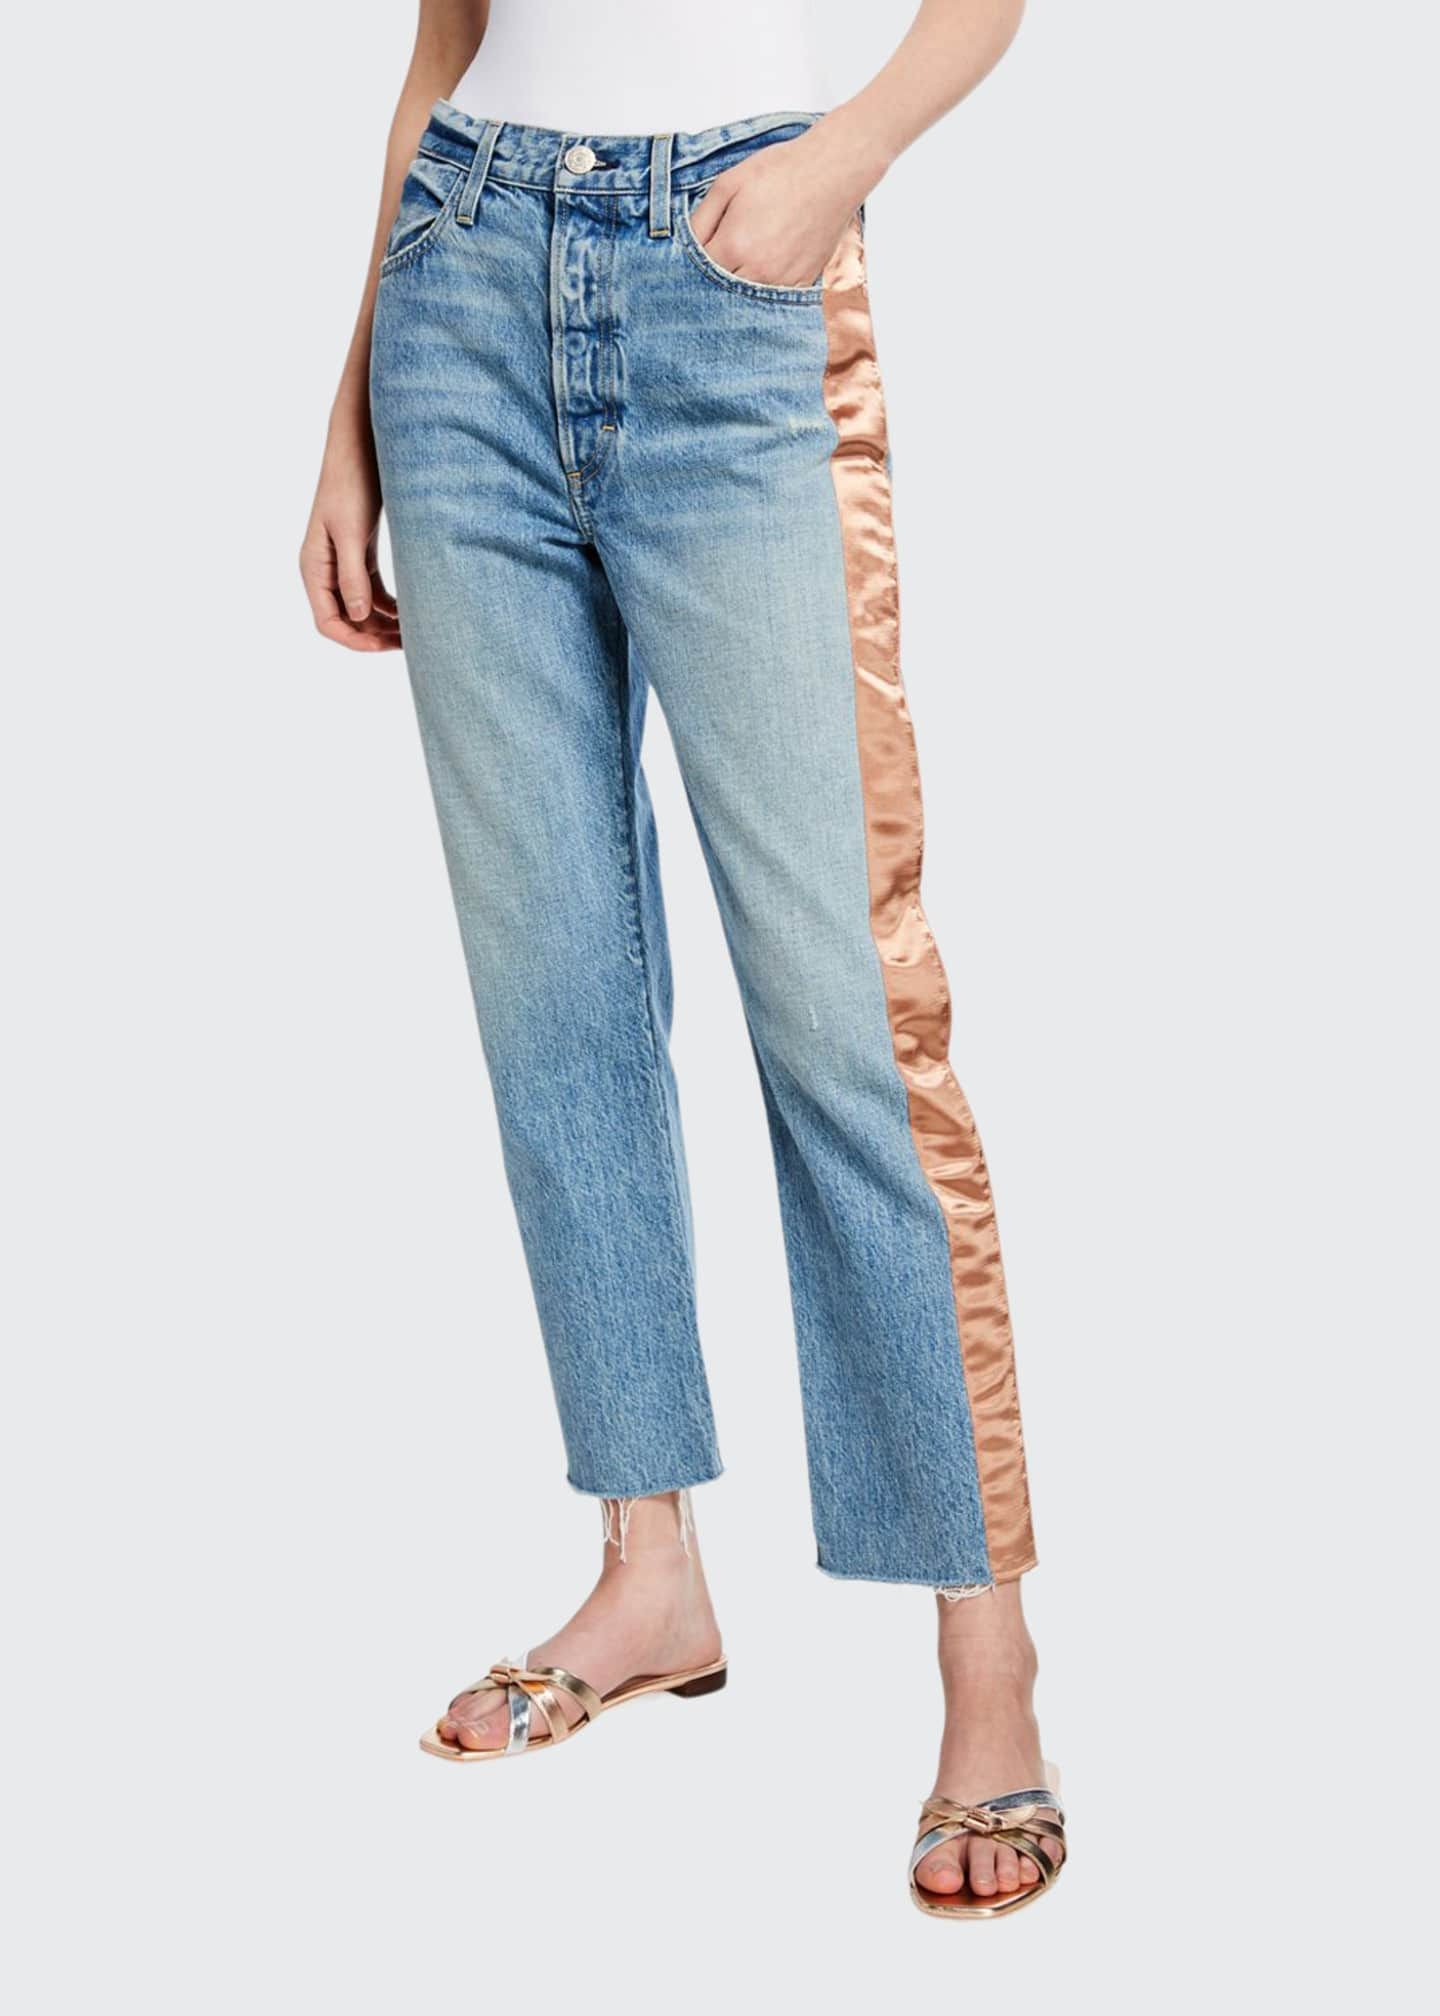 AMO Denim Ribbon Loverboy Jeans